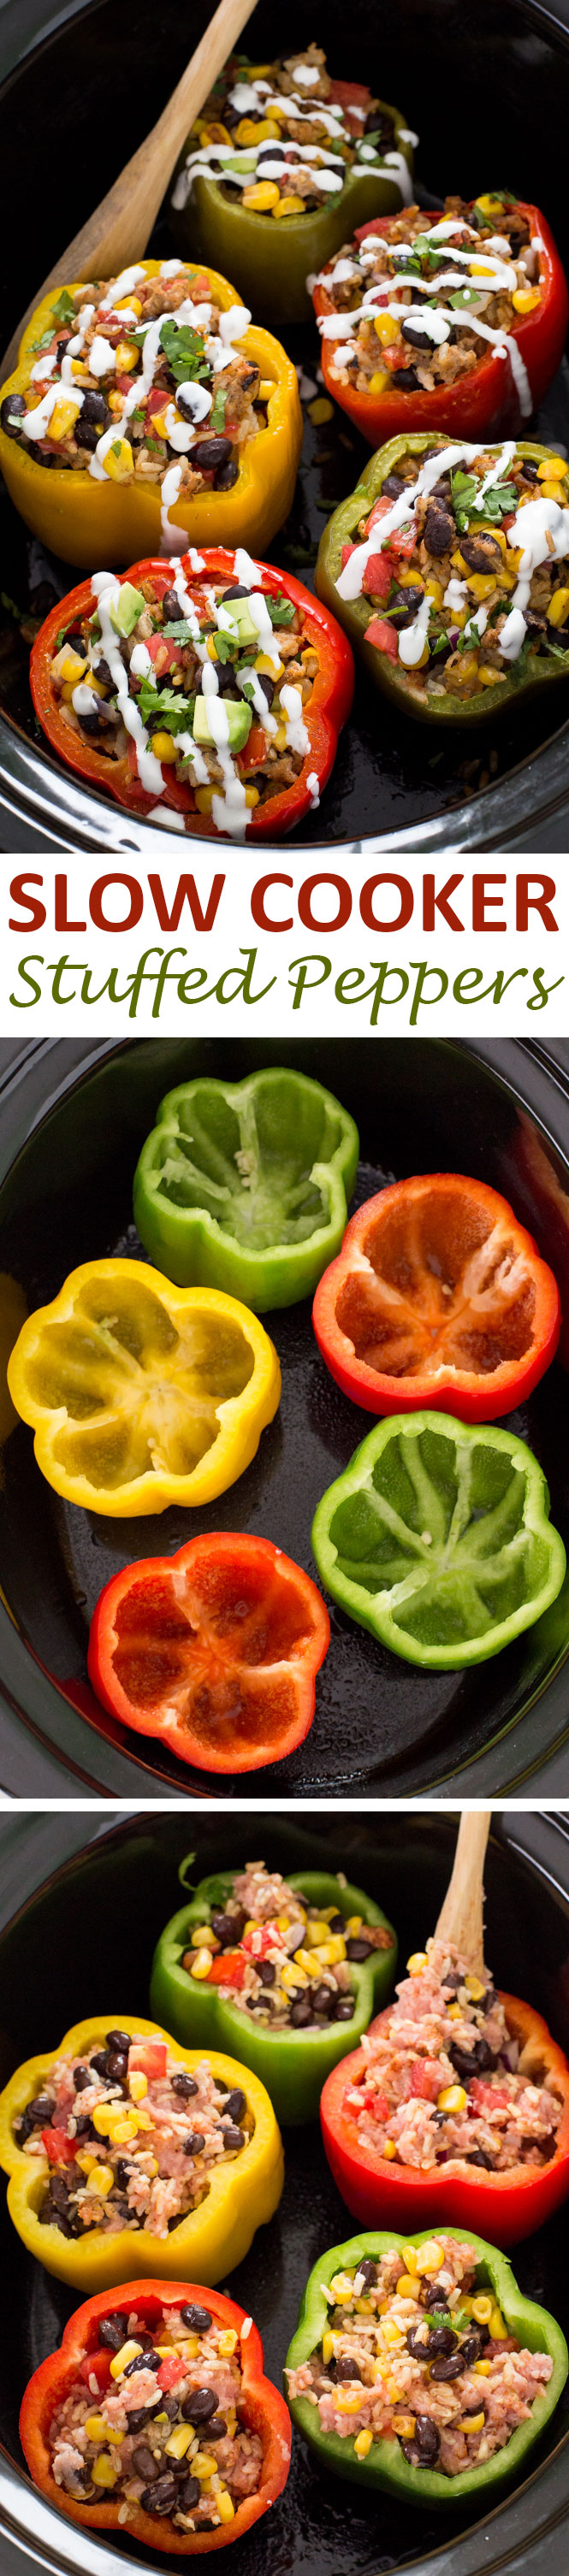 Super Easy Mexican Slow Cooke Stuffed Peppers | chefsavvy.com #recipe #mexican #slow #cooker #stuffed #peppers